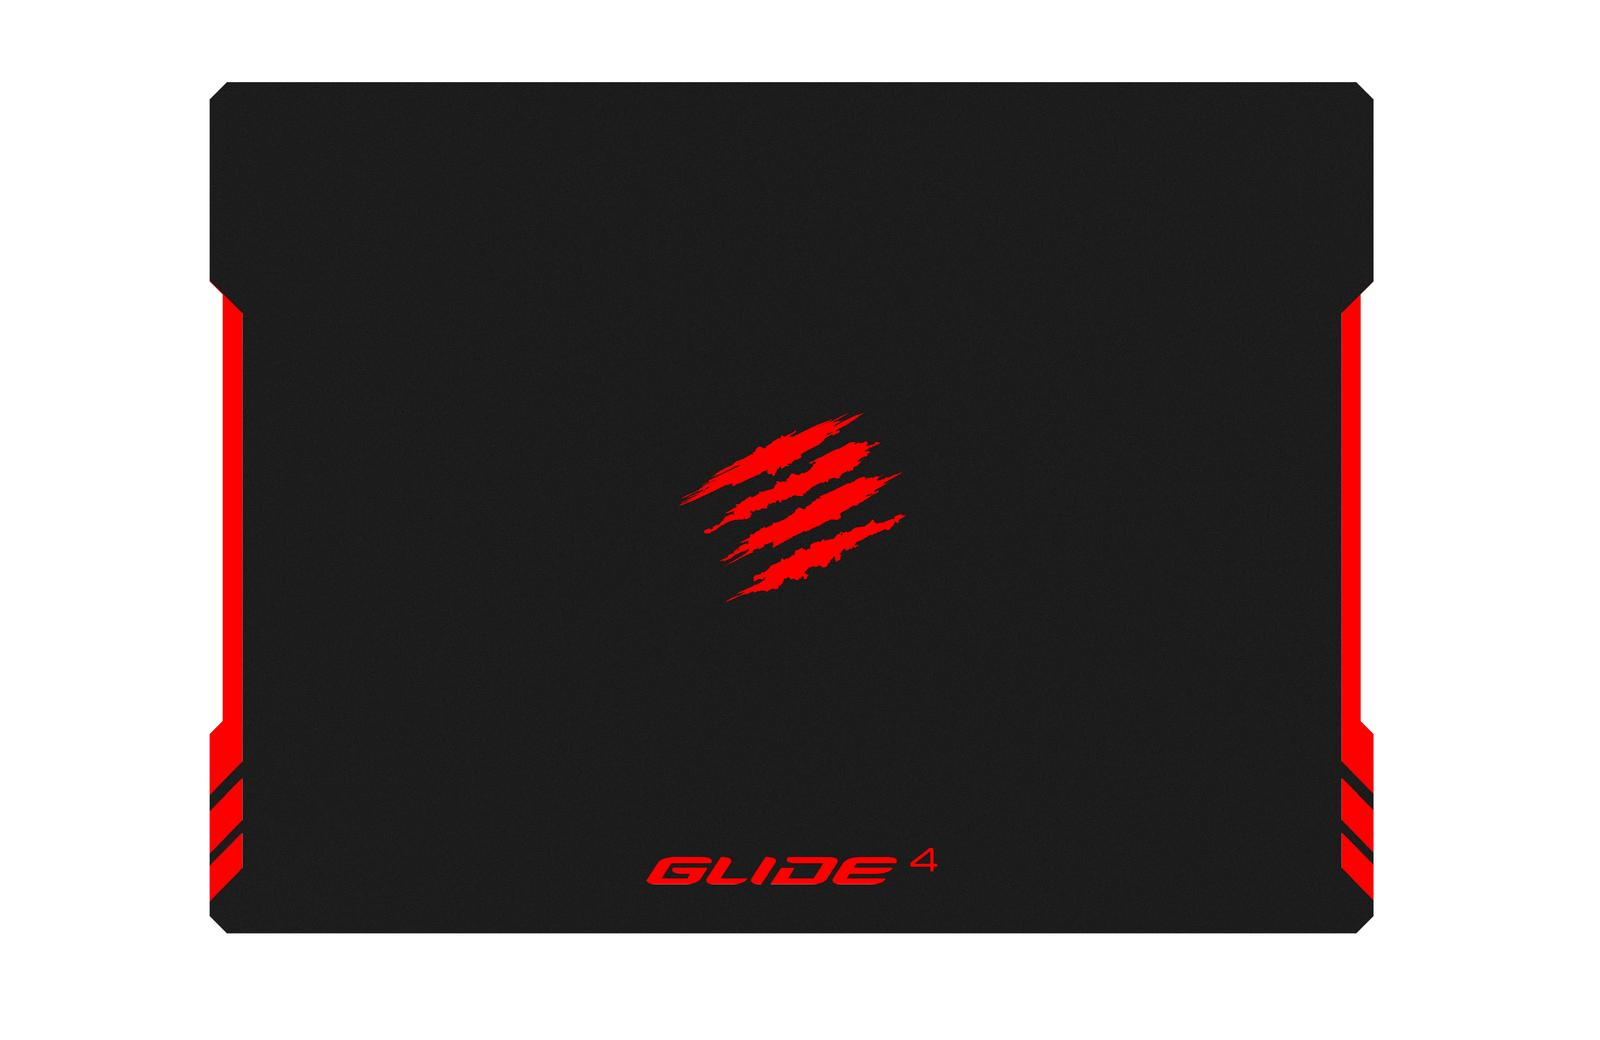 Mad Catz GLIDE 4 Black,Red Gaming mouse pad